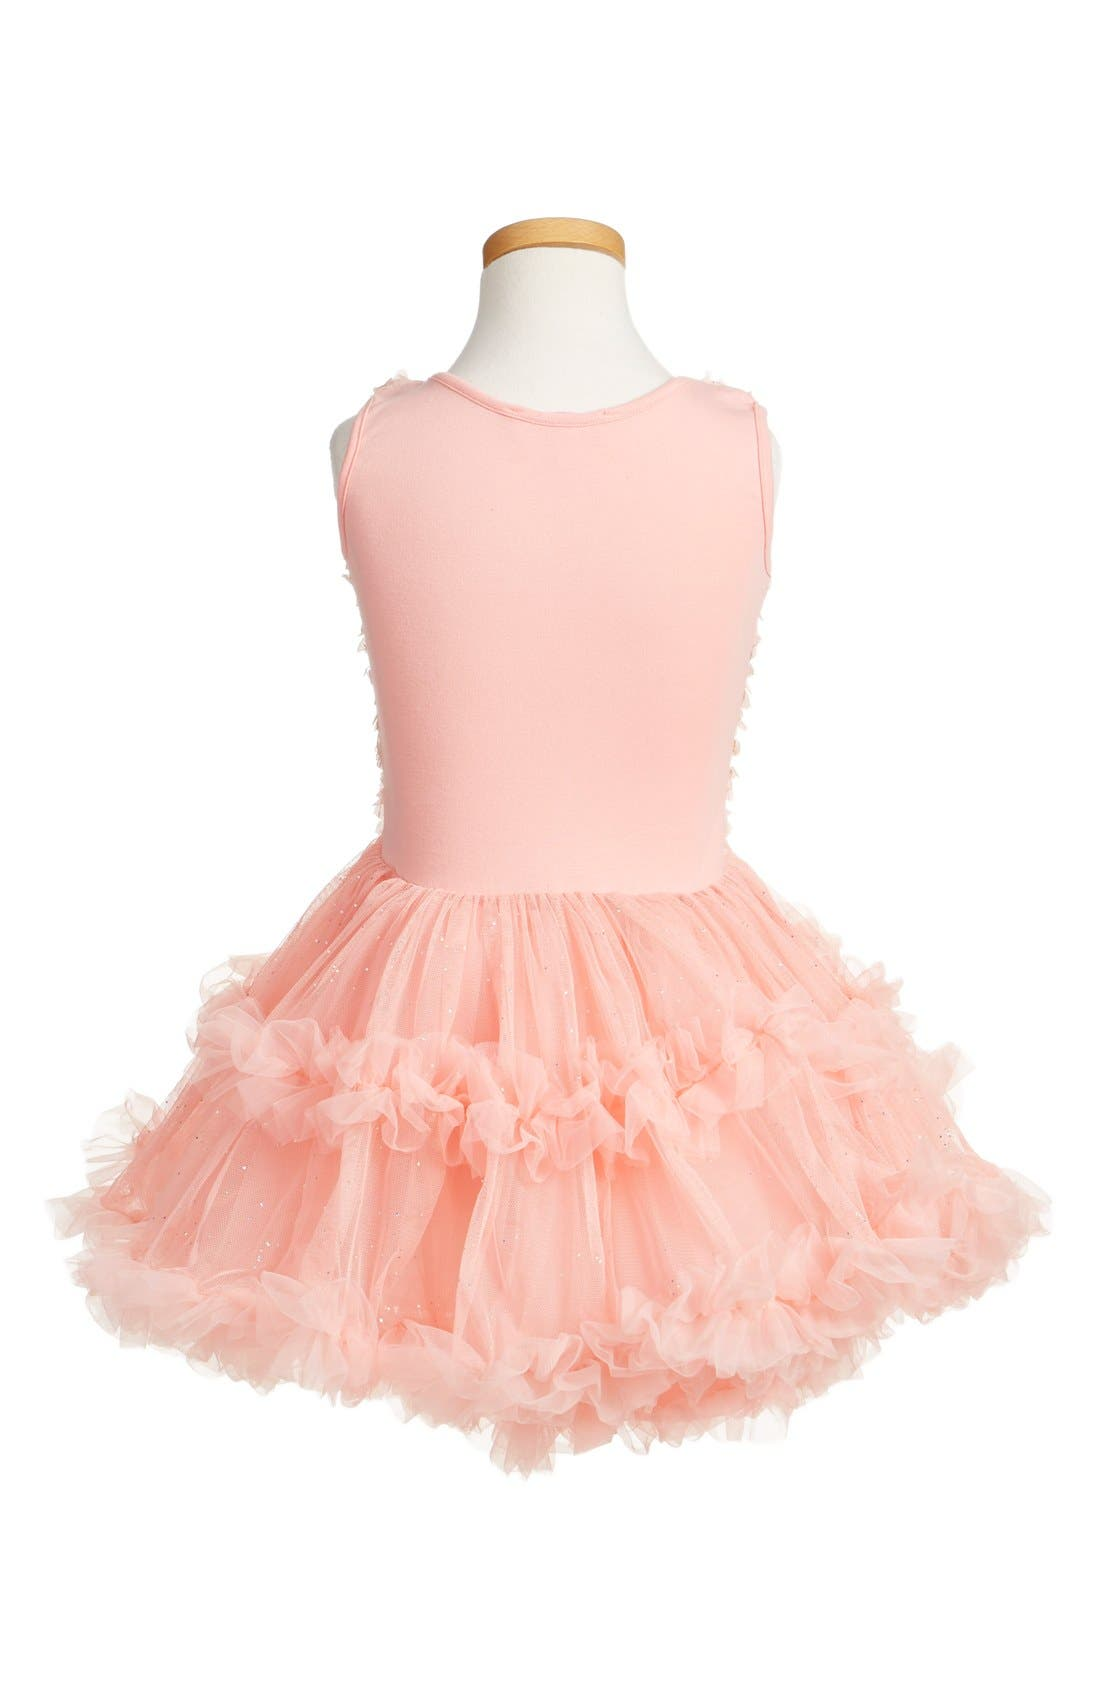 POPATU, Floral Appliqué Tutu Dress, Alternate thumbnail 2, color, PEACH